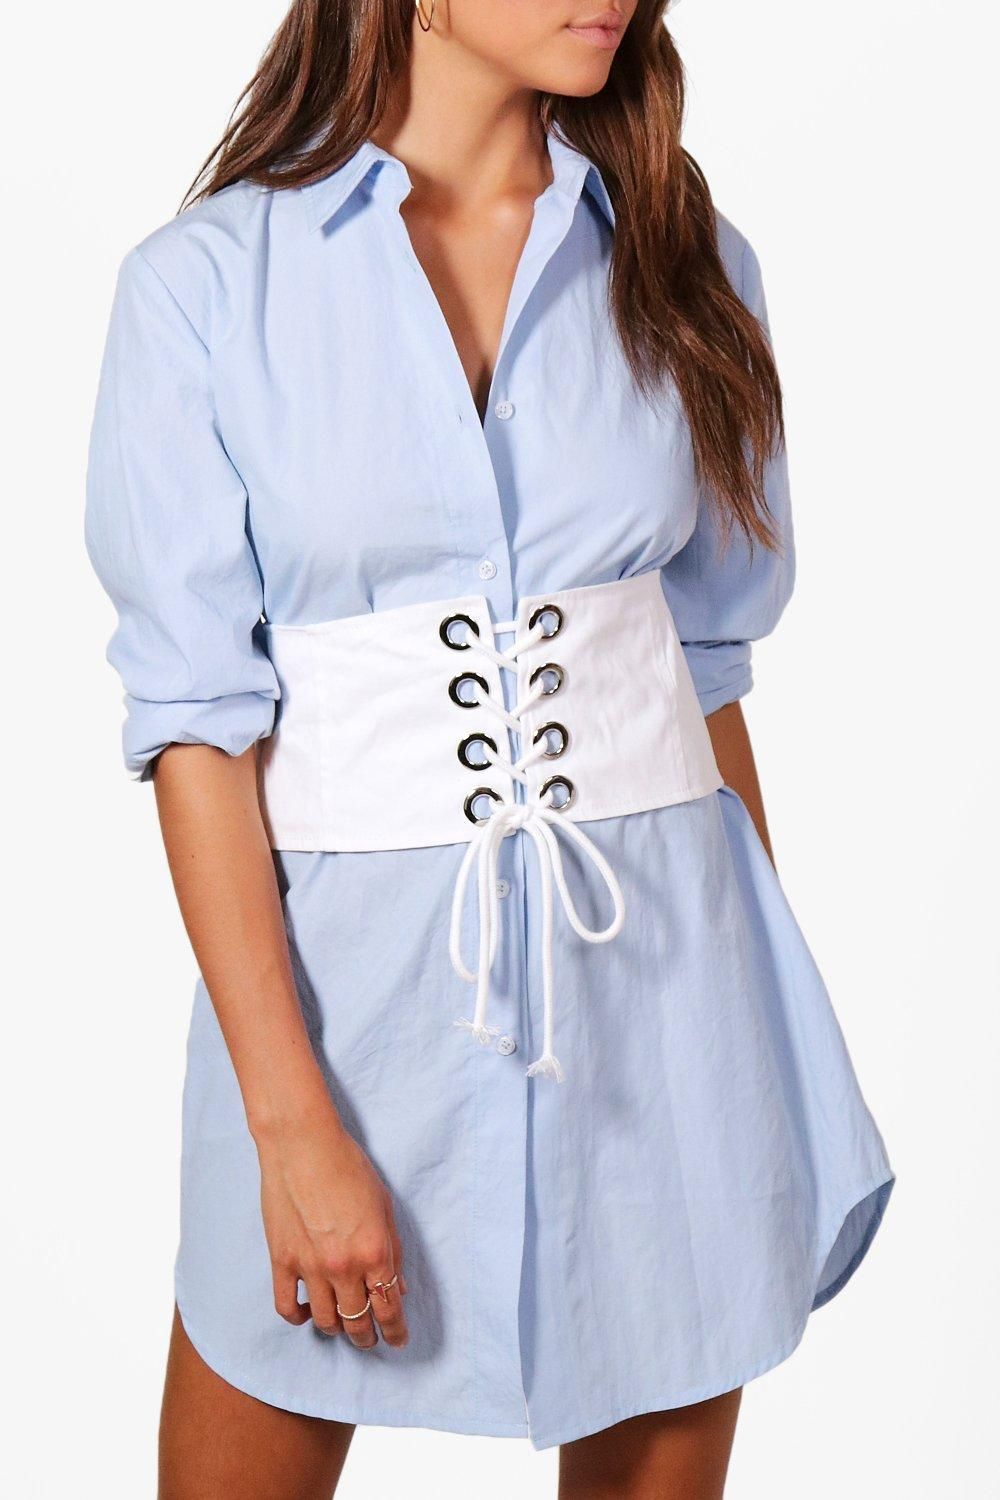 Denim Eyelet Detail Corset Belt - white - Elizabet